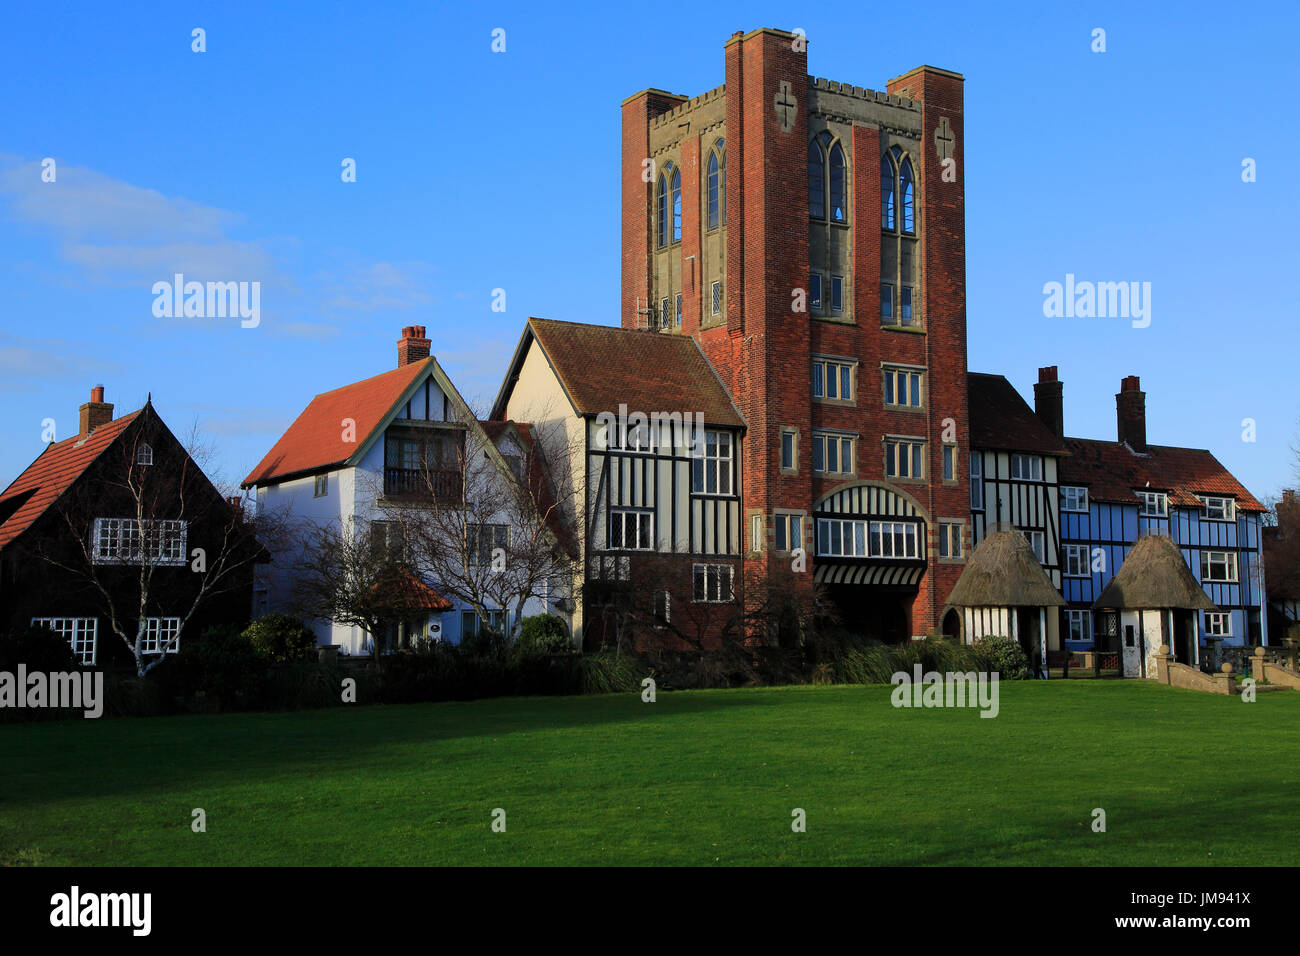 Eccentric mock Tudor architecture of water tower and houses